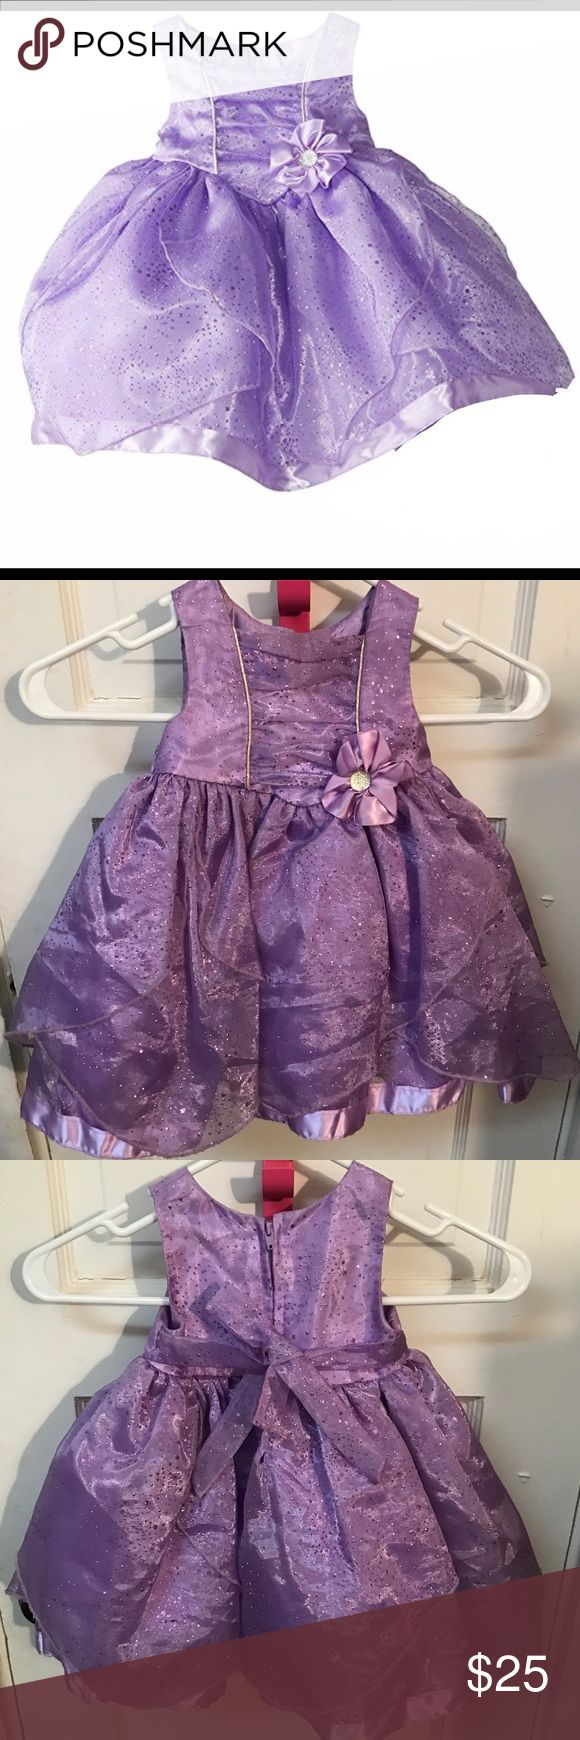 Disney Princess Dress This is an absolutely beautiful purple princess dress from Disney. This is for a size 18 months, but unfortunately was too small for my daughter. It's 100% polyester. My loss is your gain 😭. This dress really does look and feel like a princess dress. It's so stunning in real life, good for birthday parties, weddings, and even Easter. Dresses